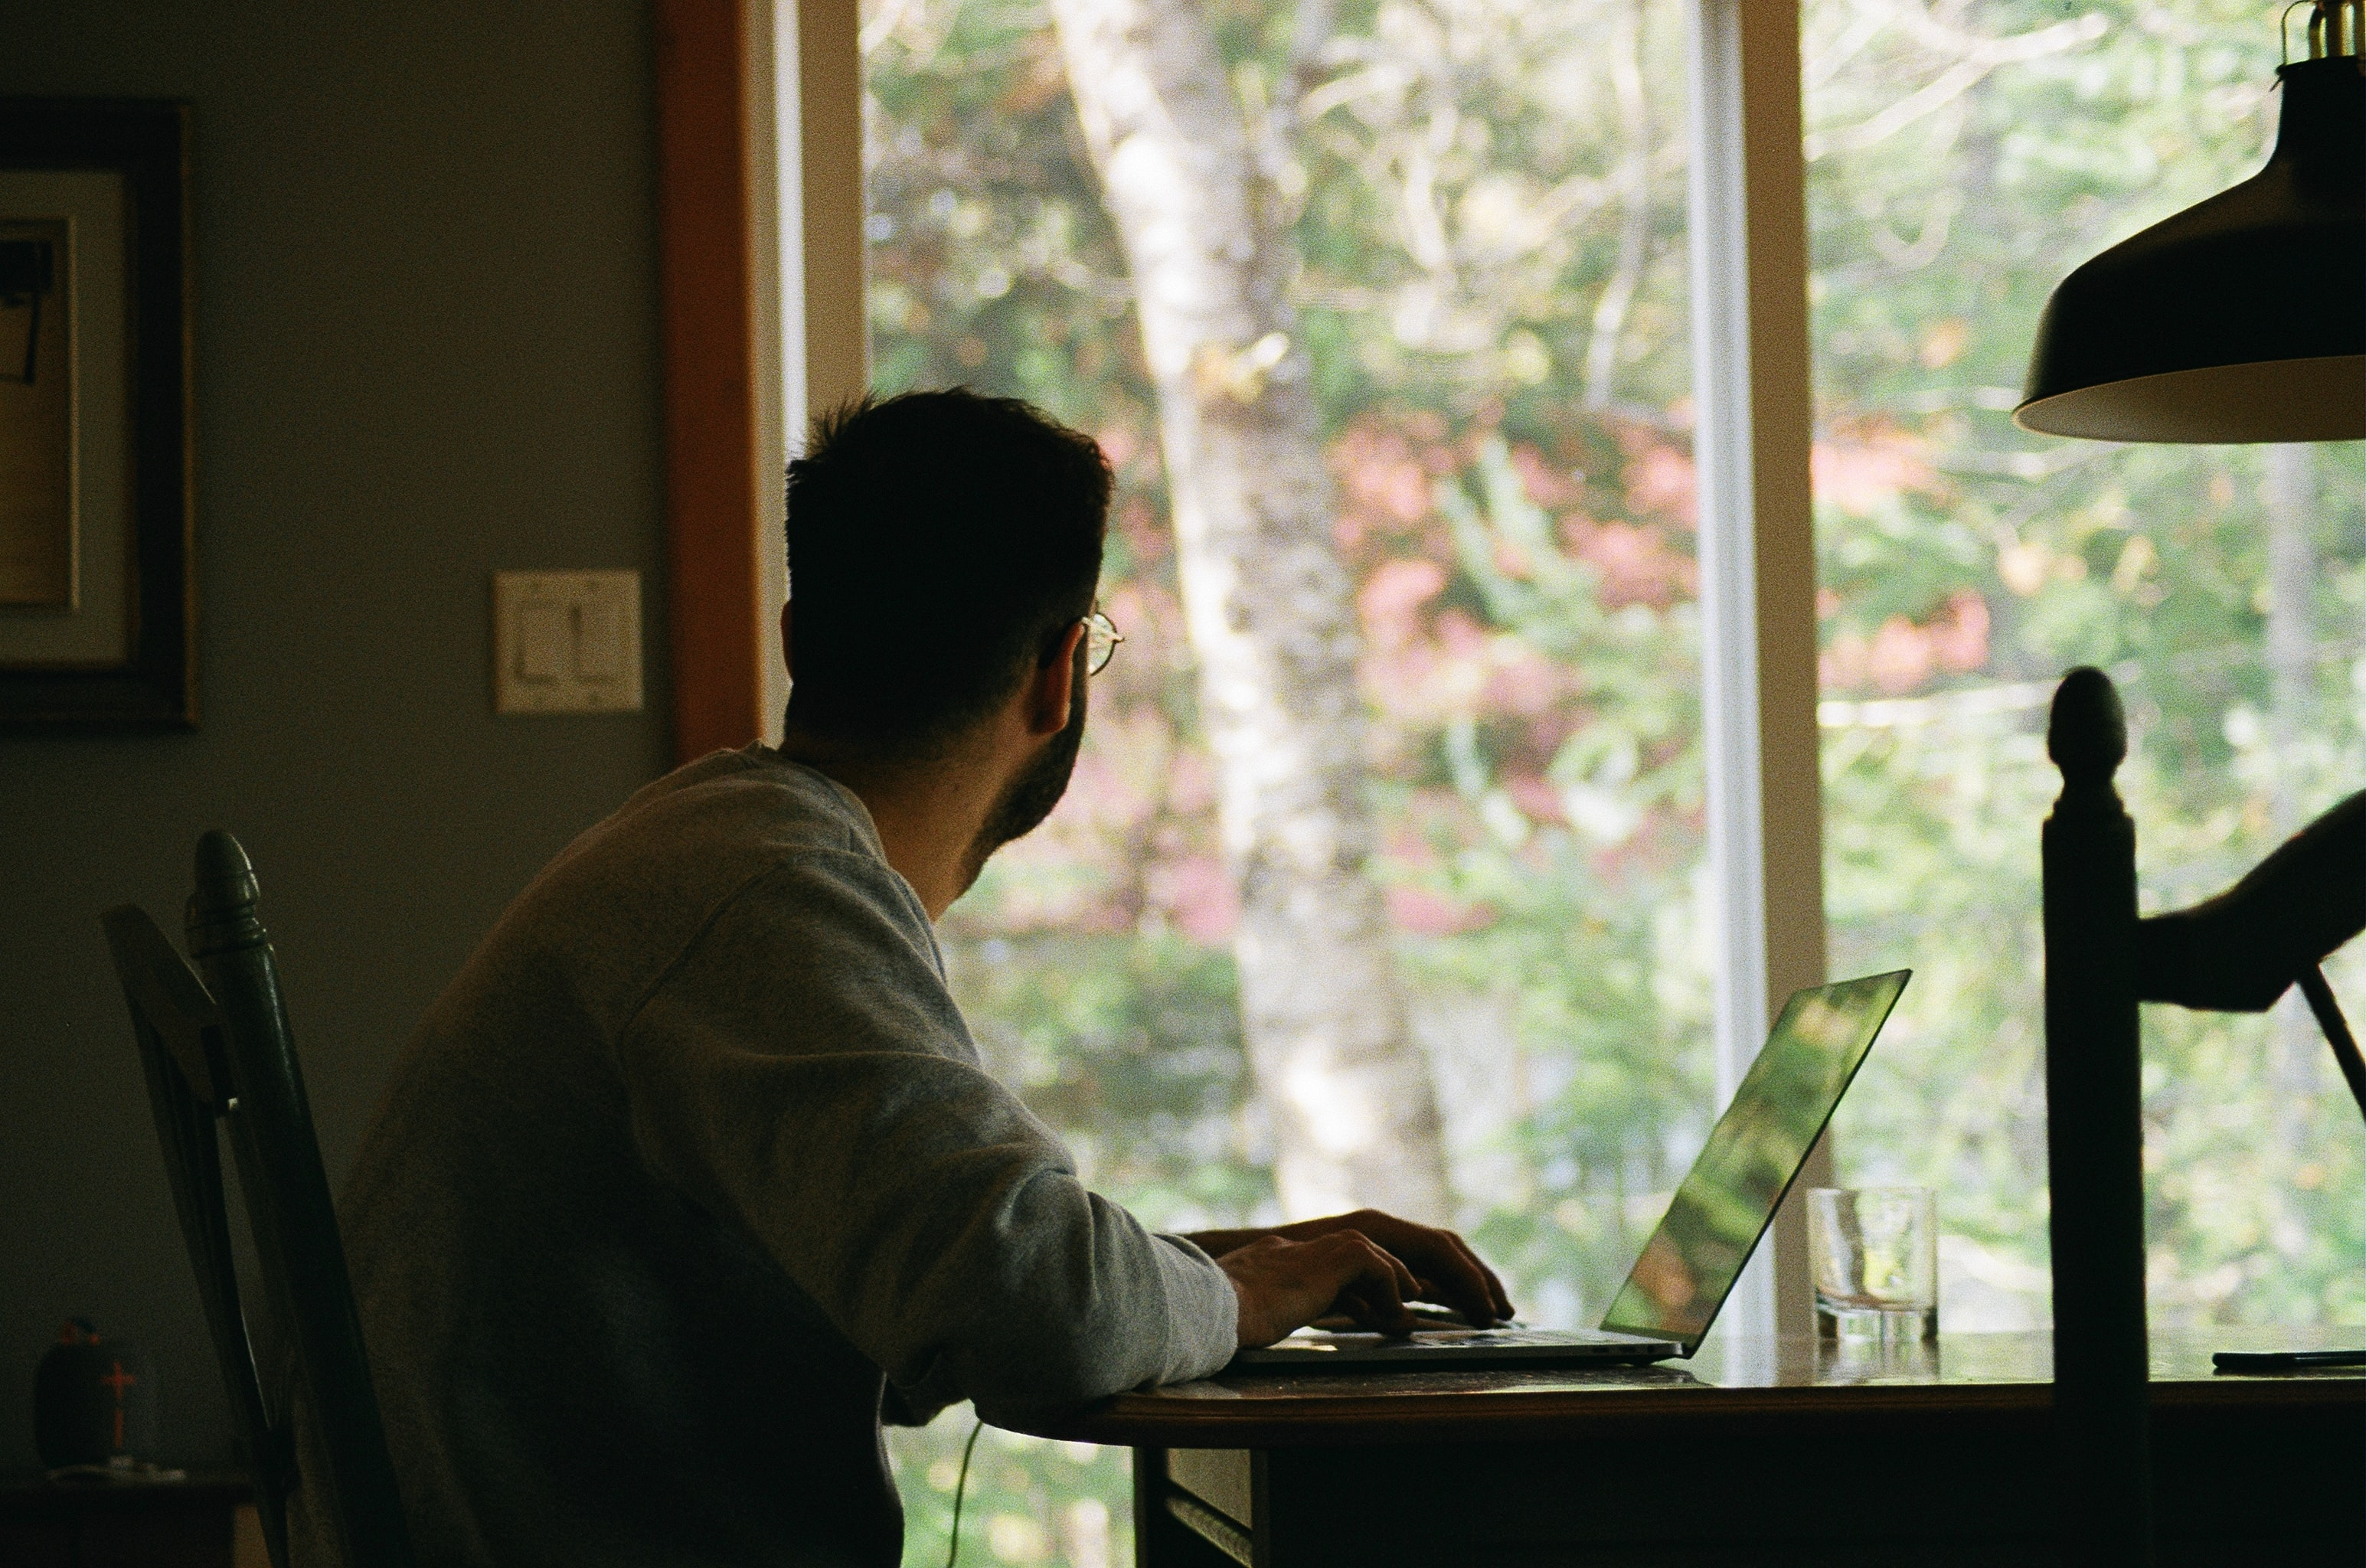 A man looks out the window while working on a laptop at home